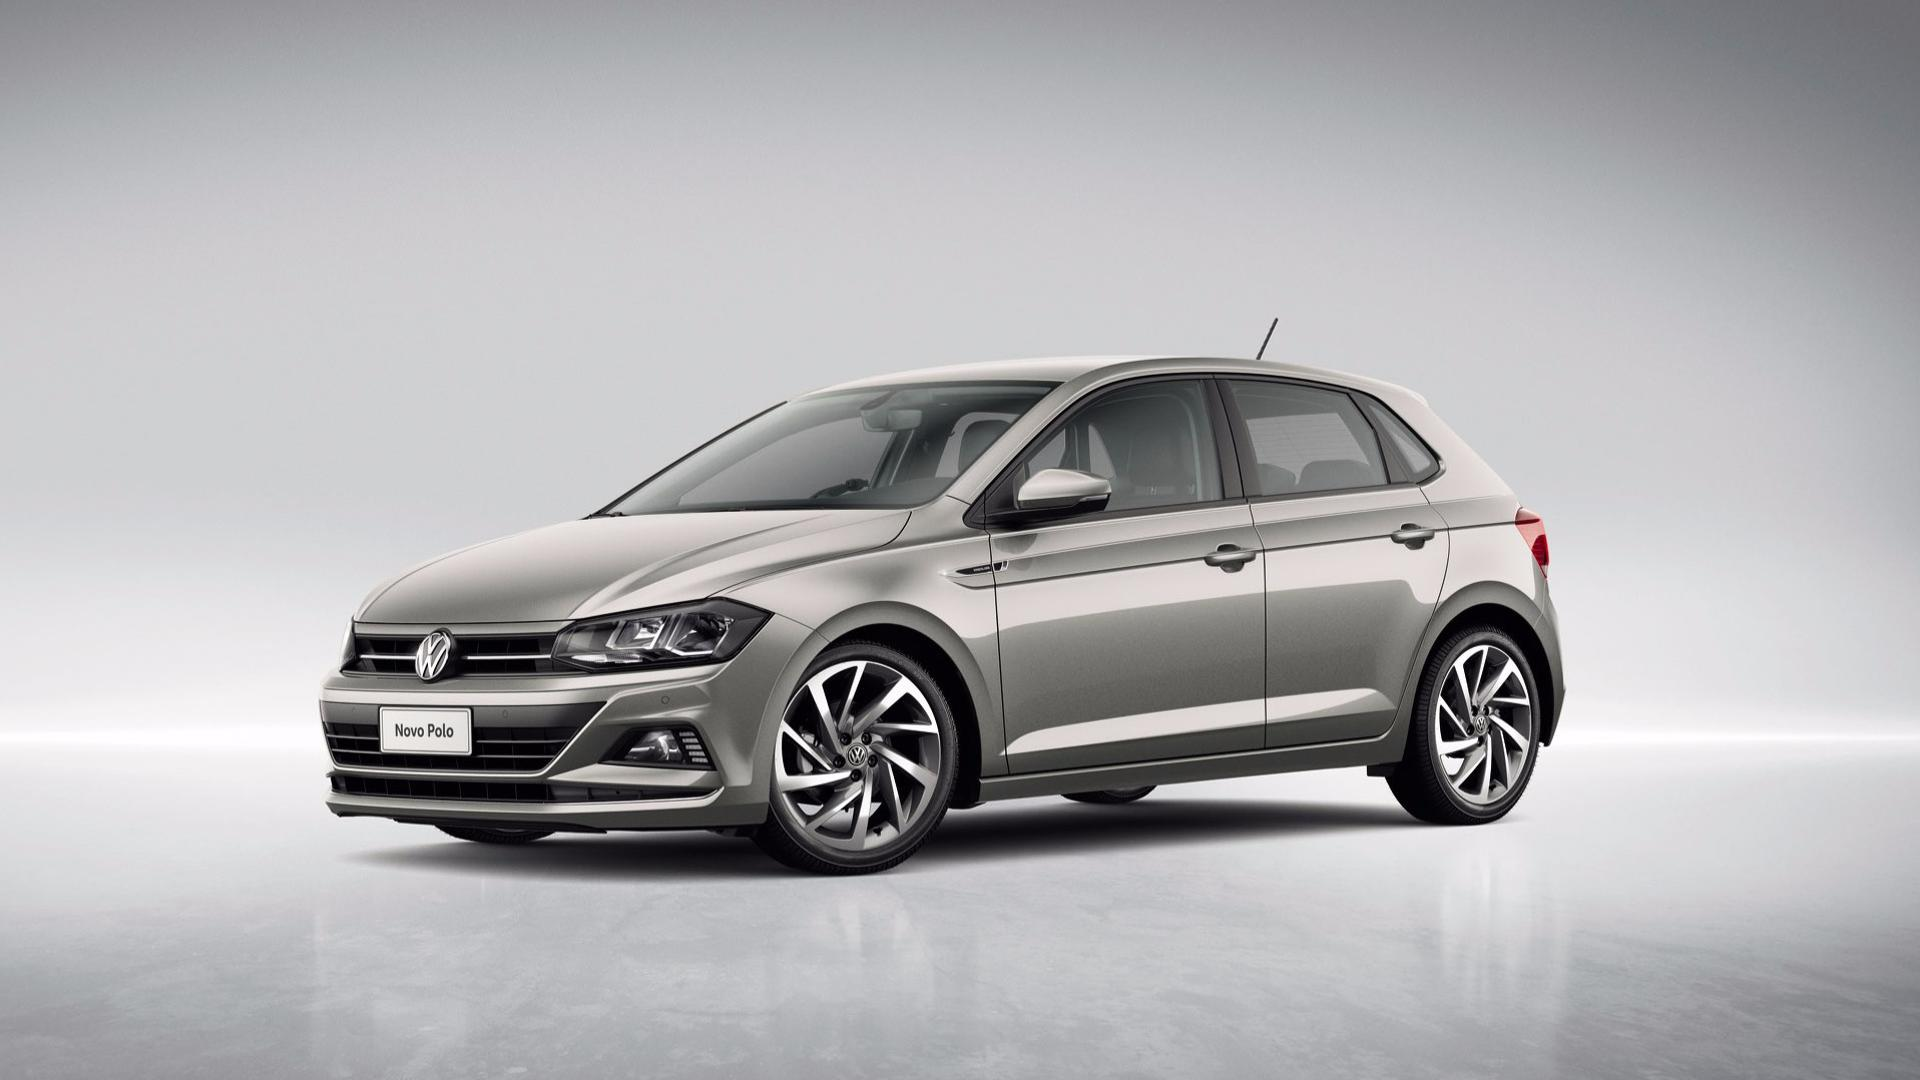 2018 Volkswagen Polo Launched In Brazil With 128 Hp 10 Liter Turbo